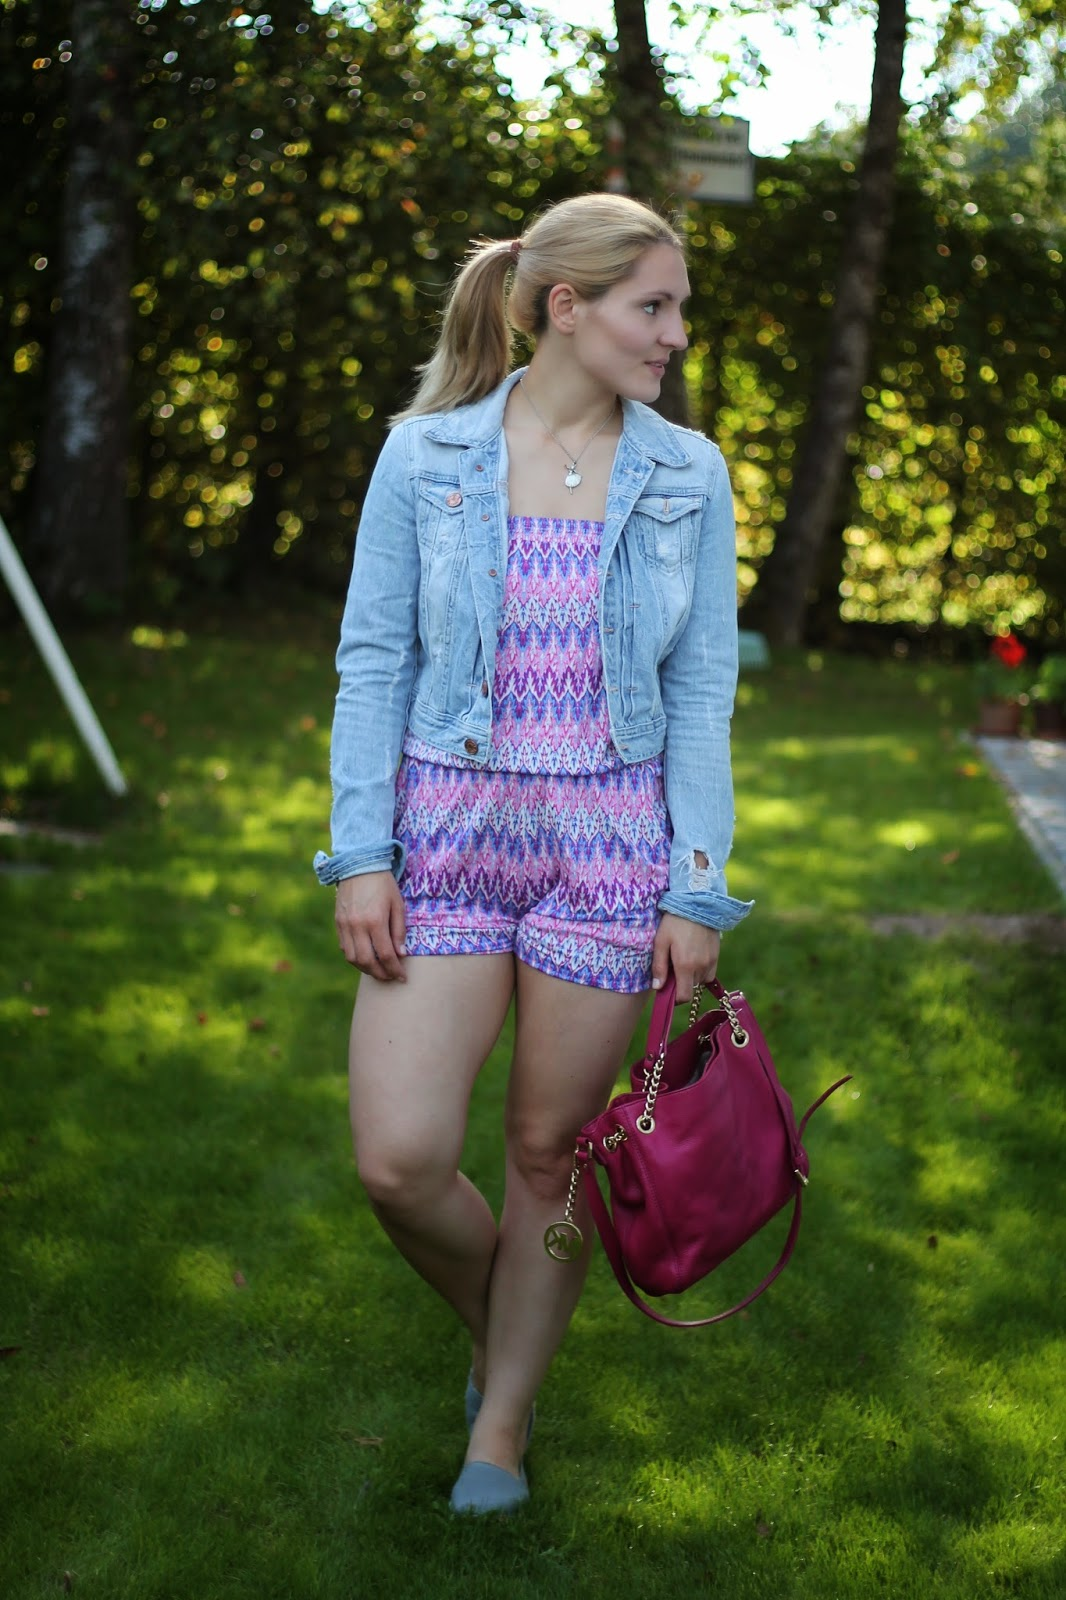 Fashionblogger Austria / Österreich / Deutsch / German / Kärnten / Carinthia / Klagenfurt / Köttmannsdorf / Spring Look / Classy / Edgy / Summer / Summer Style 2014 / Summer Look / Fashionista Look /   / Summer Look / Takko / Jumpsuit / Michael Kors Jetset Bag Pink / Espadrillas Espadrij Grey / Jeans Jacket H&M / Ballerina Necklace /